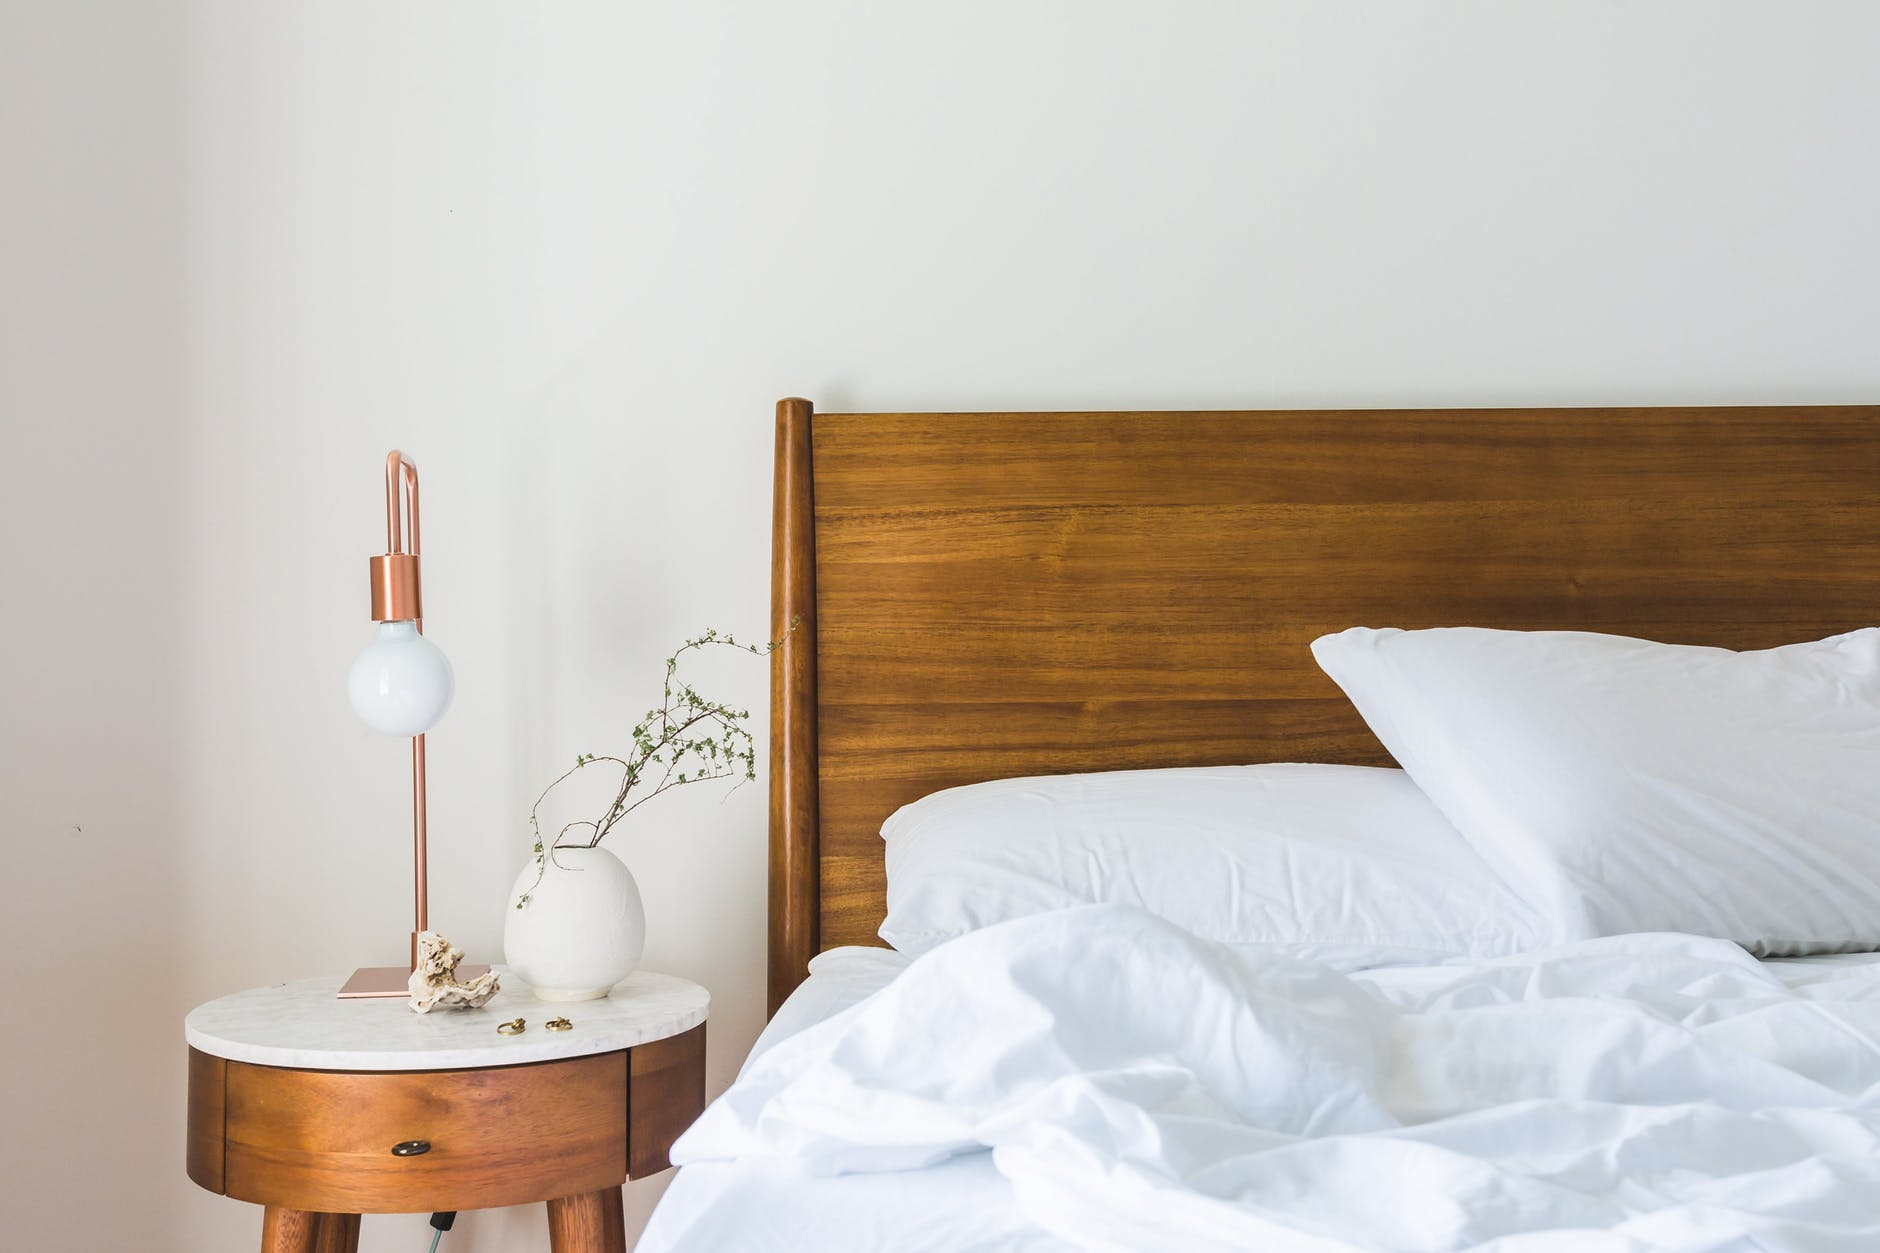 A fresh mattress on your bed is a great way to add a new feel to your bedroom